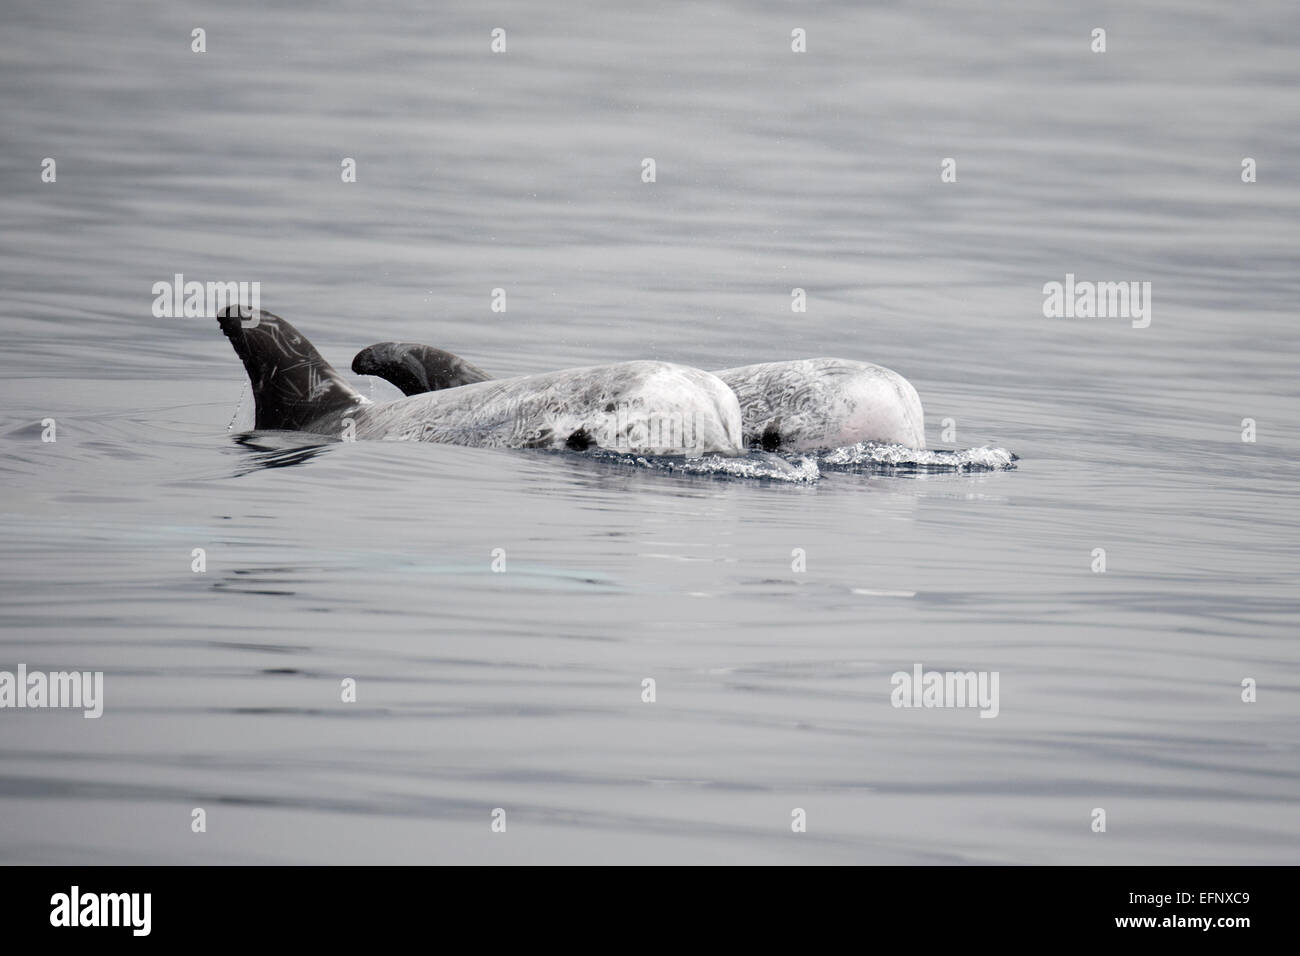 Risso's Dolphin (Grampus griseus) seen during a Whale-Watching trip. Azores, Atlantic Ocean - Stock Image